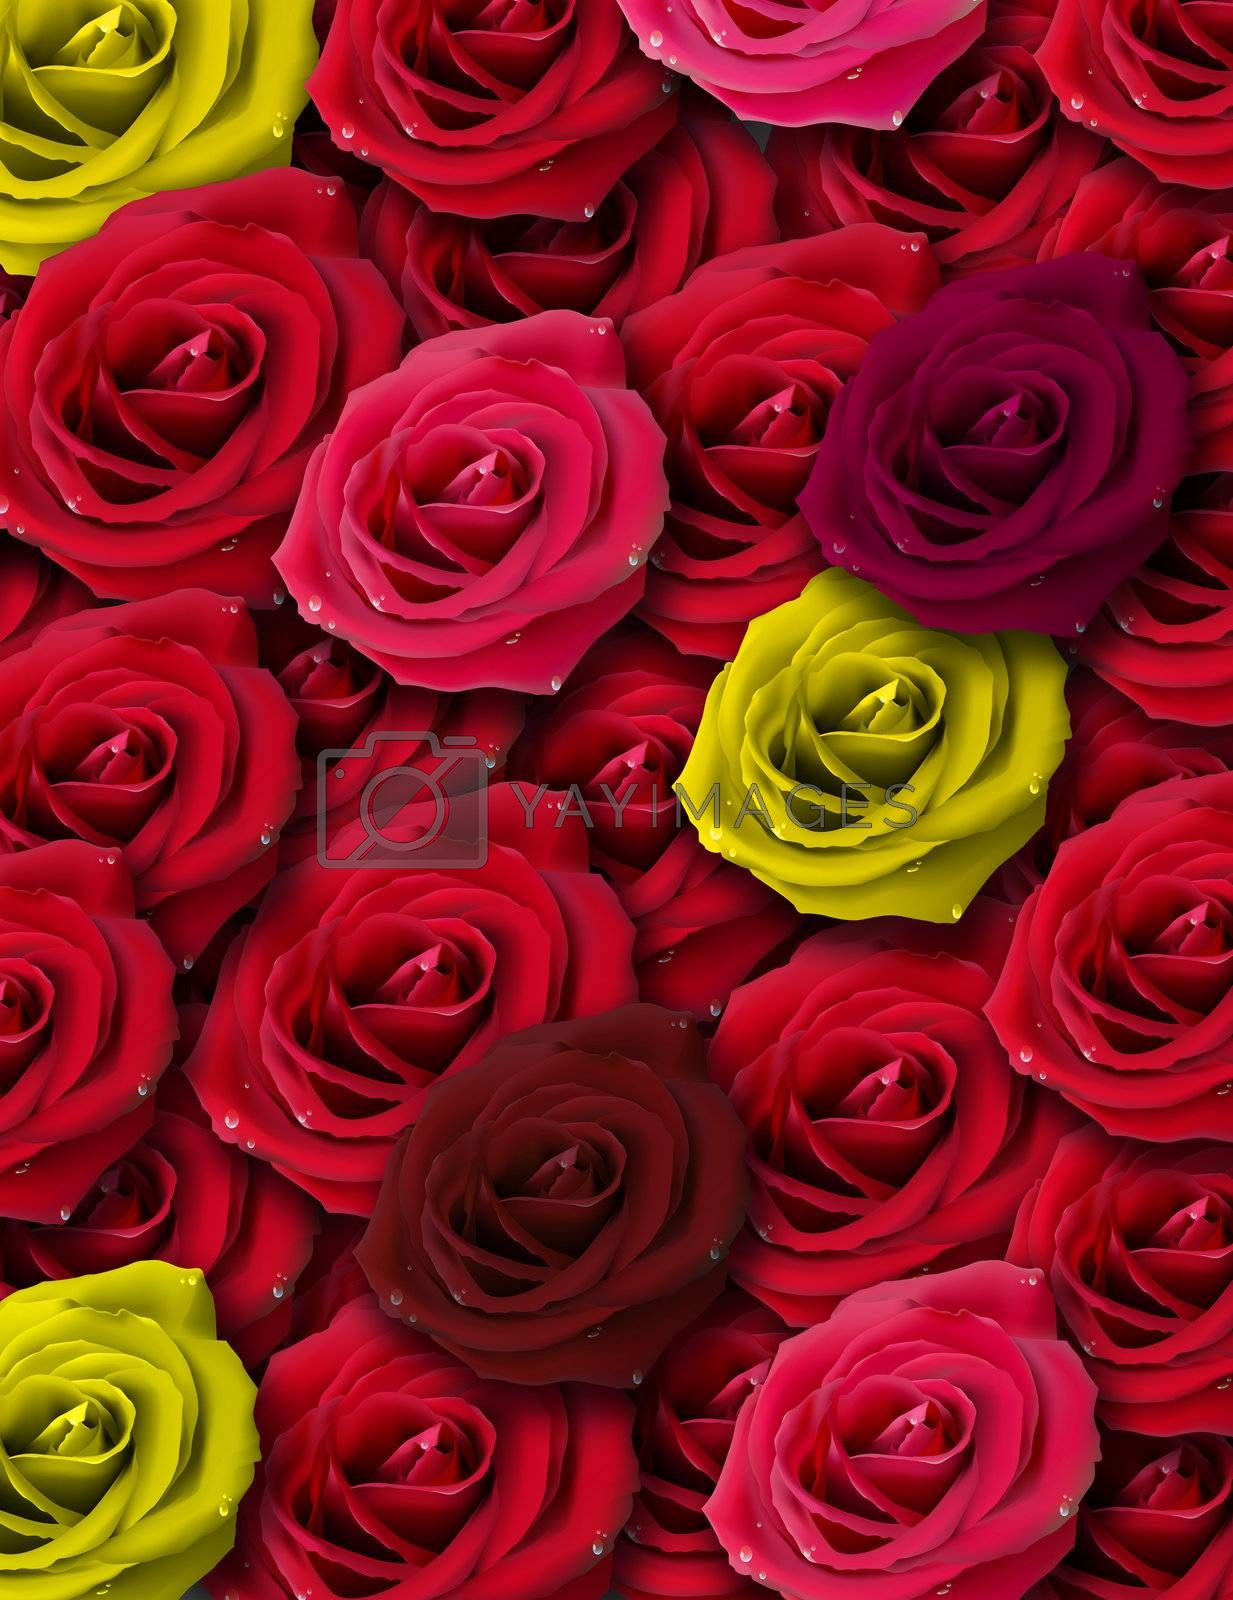 abstract illustration, yellow and red roses drops